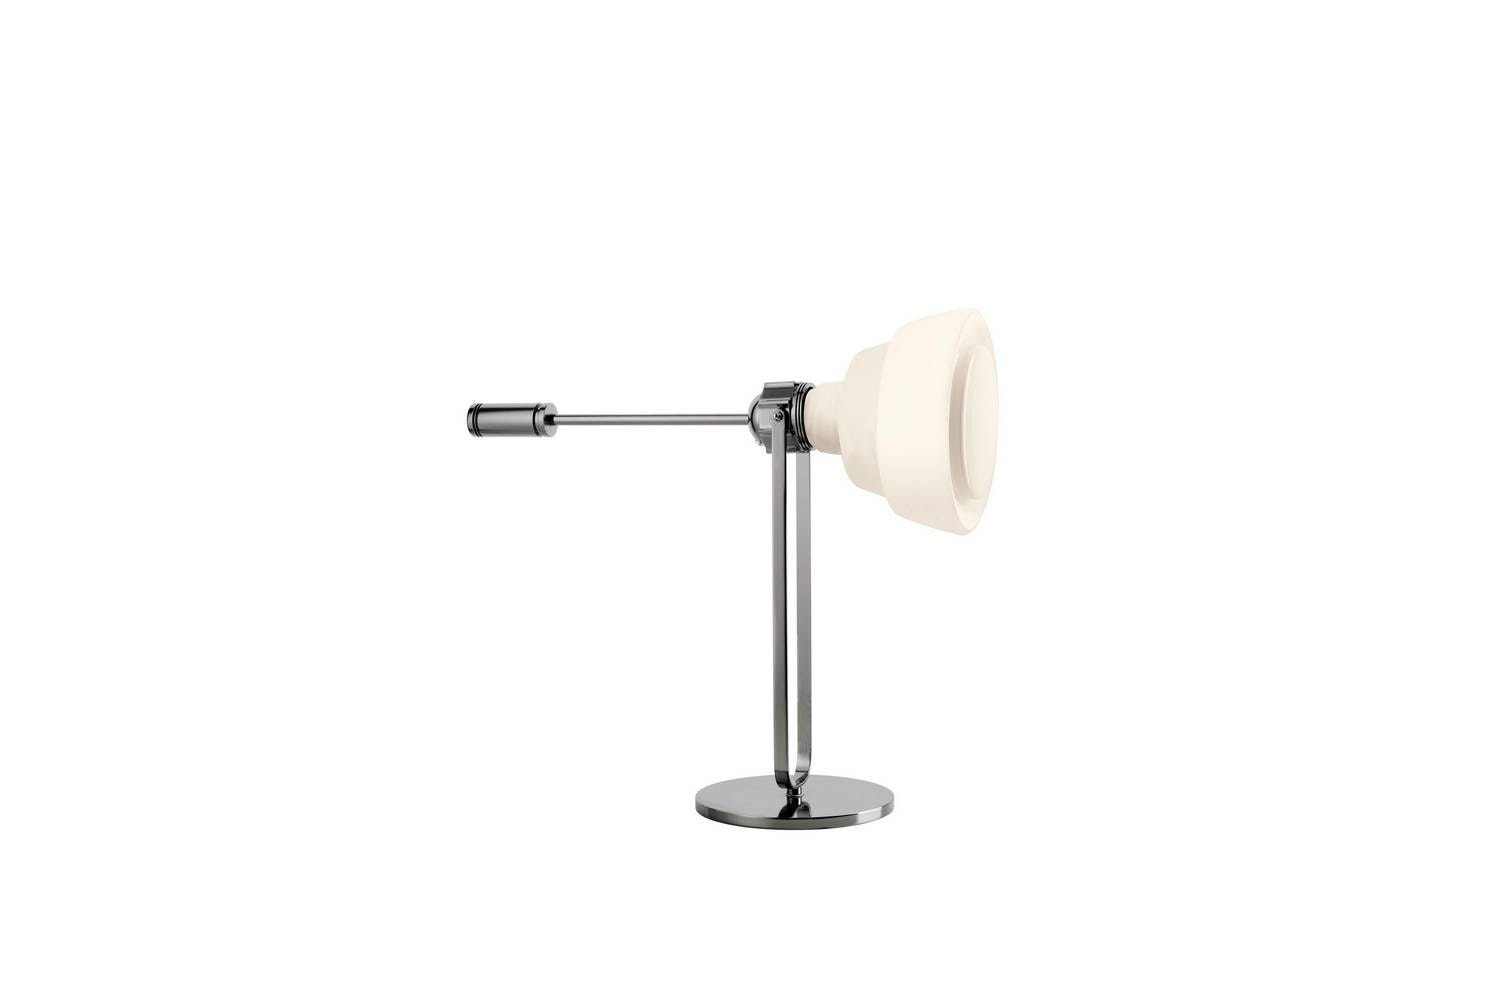 Glas Table Lamp by Successful Living from DIESEL for Foscarini